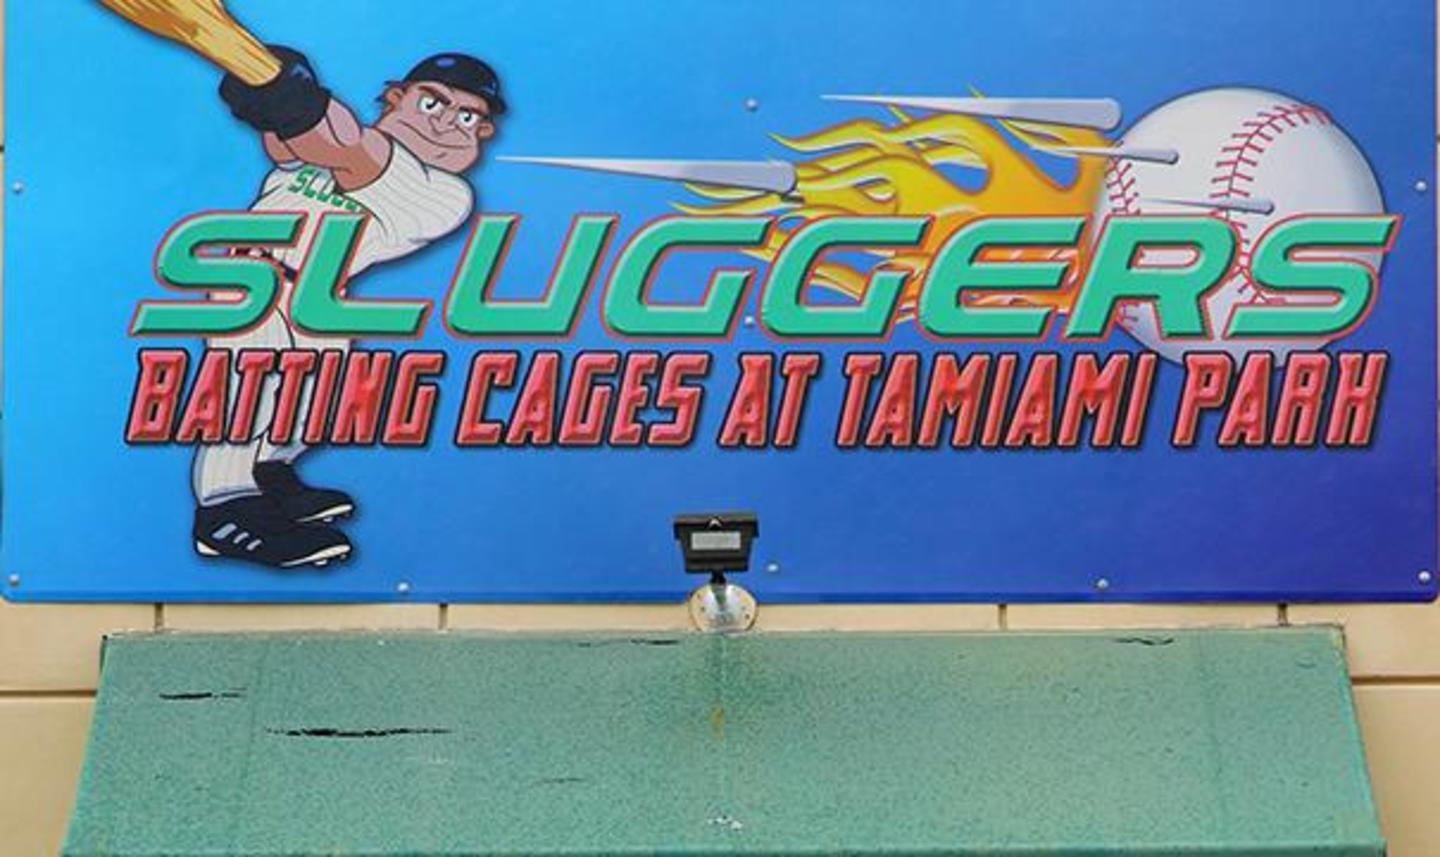 Tamiami Batting Cages